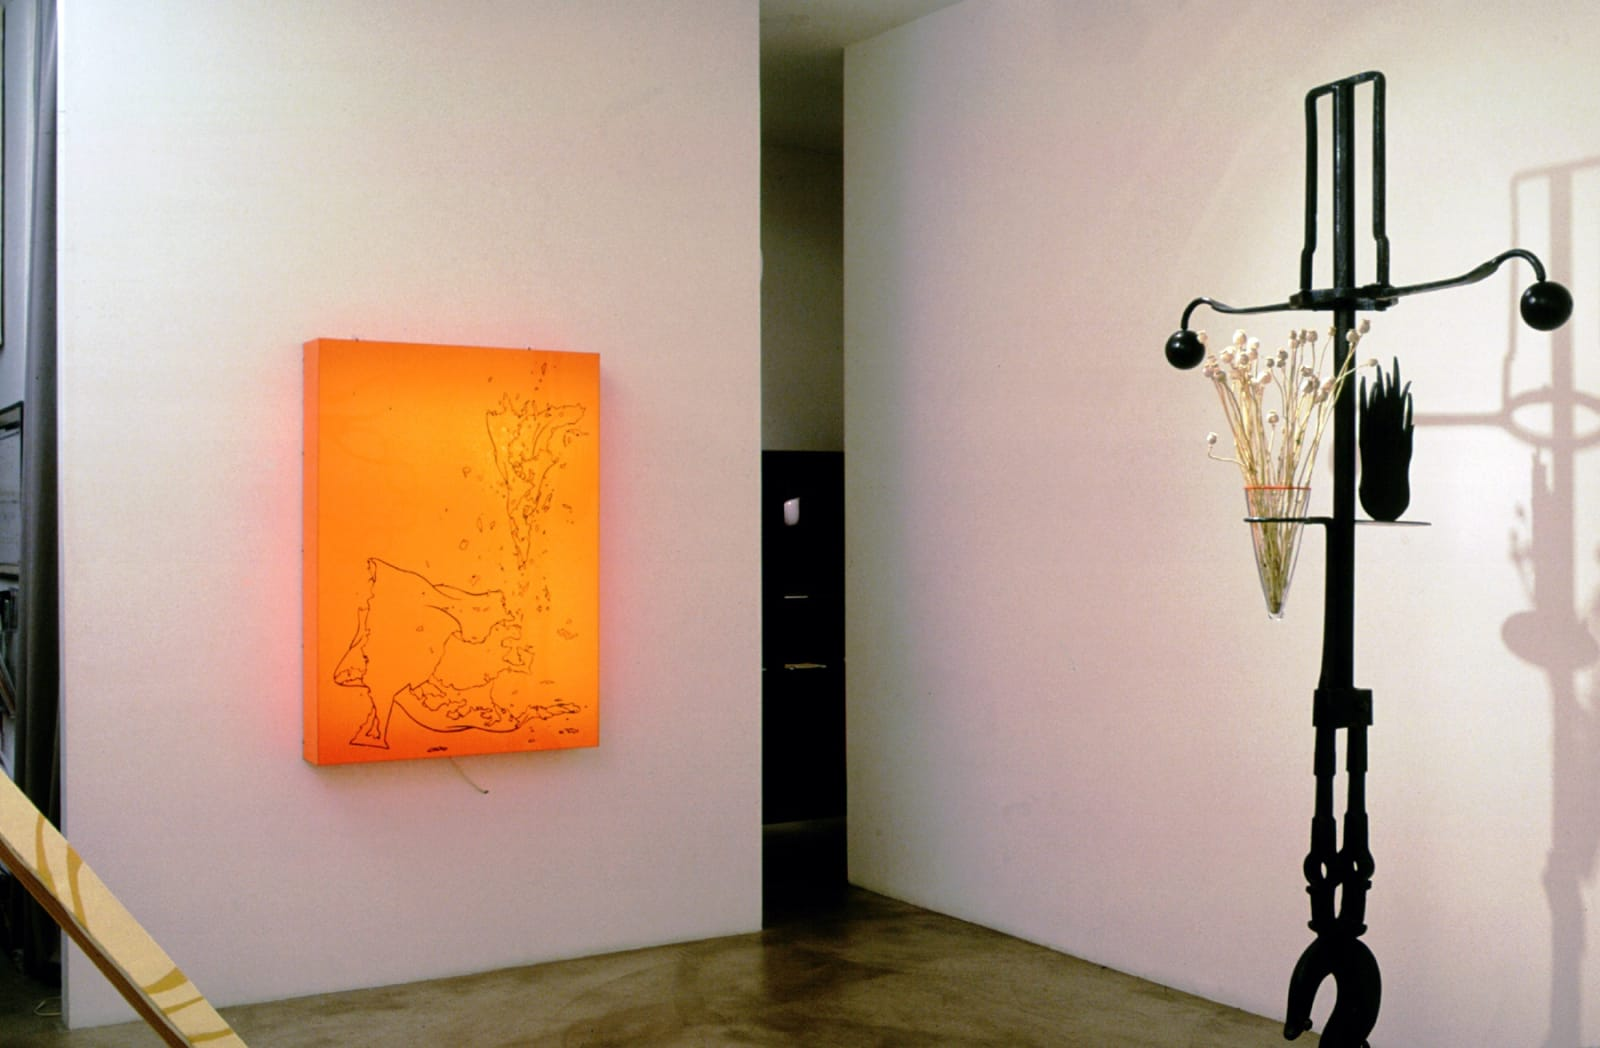 Sculpture on the Floor, Wall, and Ceiling | Group Exhibition